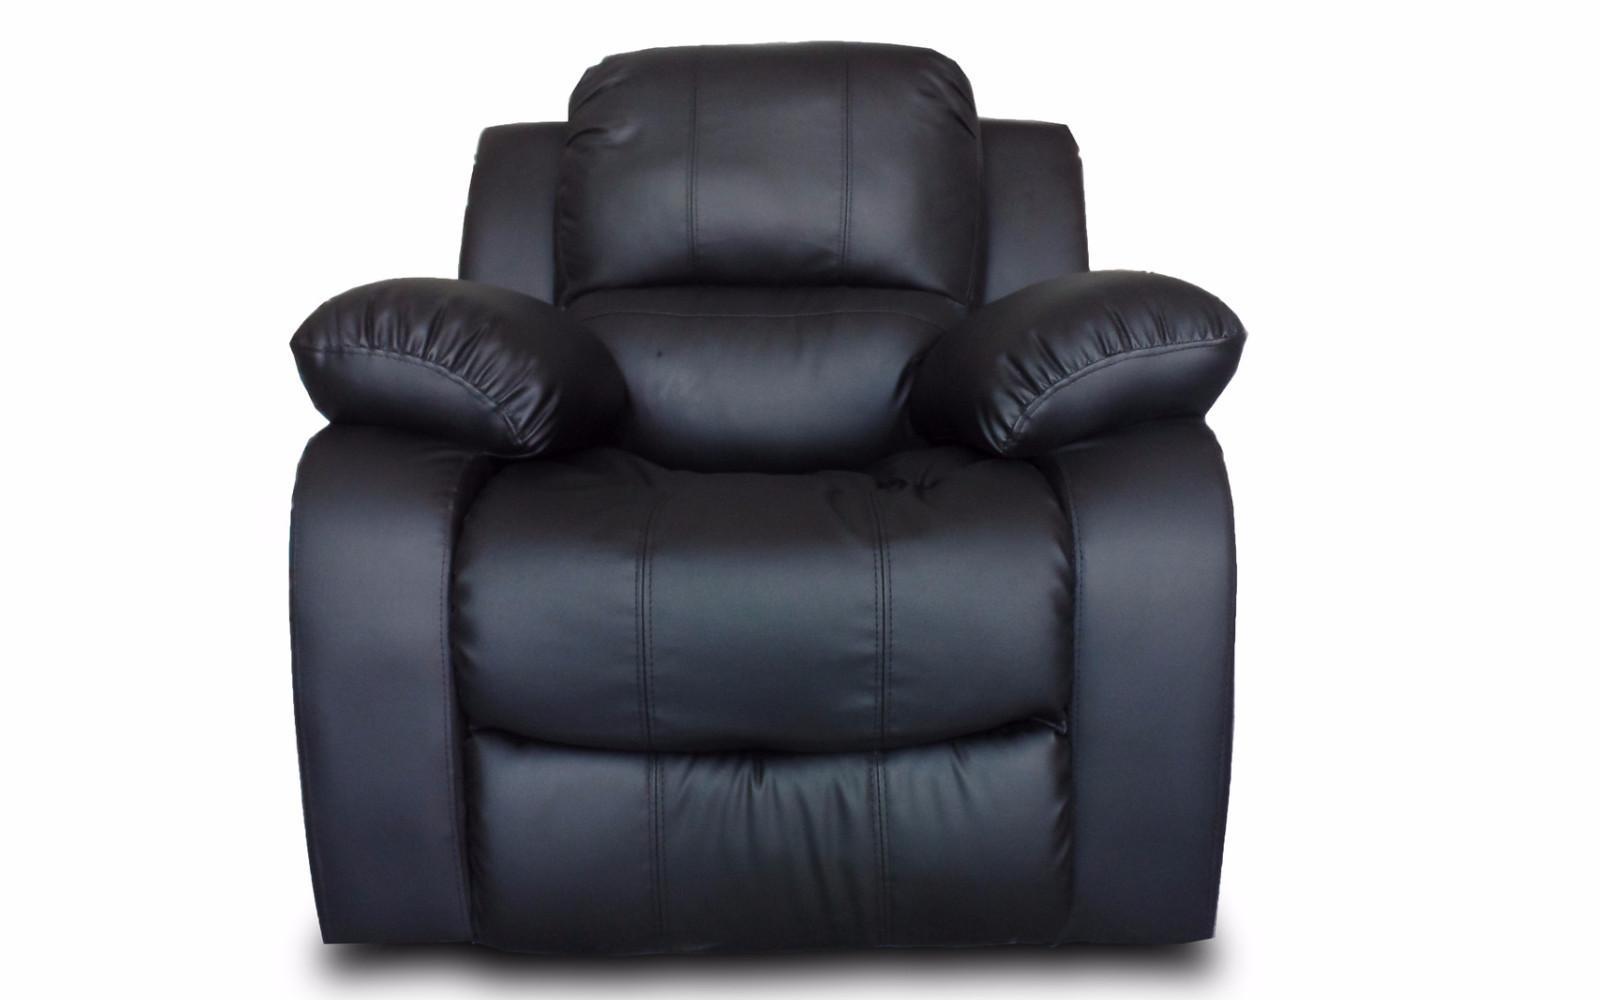 Living Room Furniture With Big Sofa Chairs (Image 15 of 20)